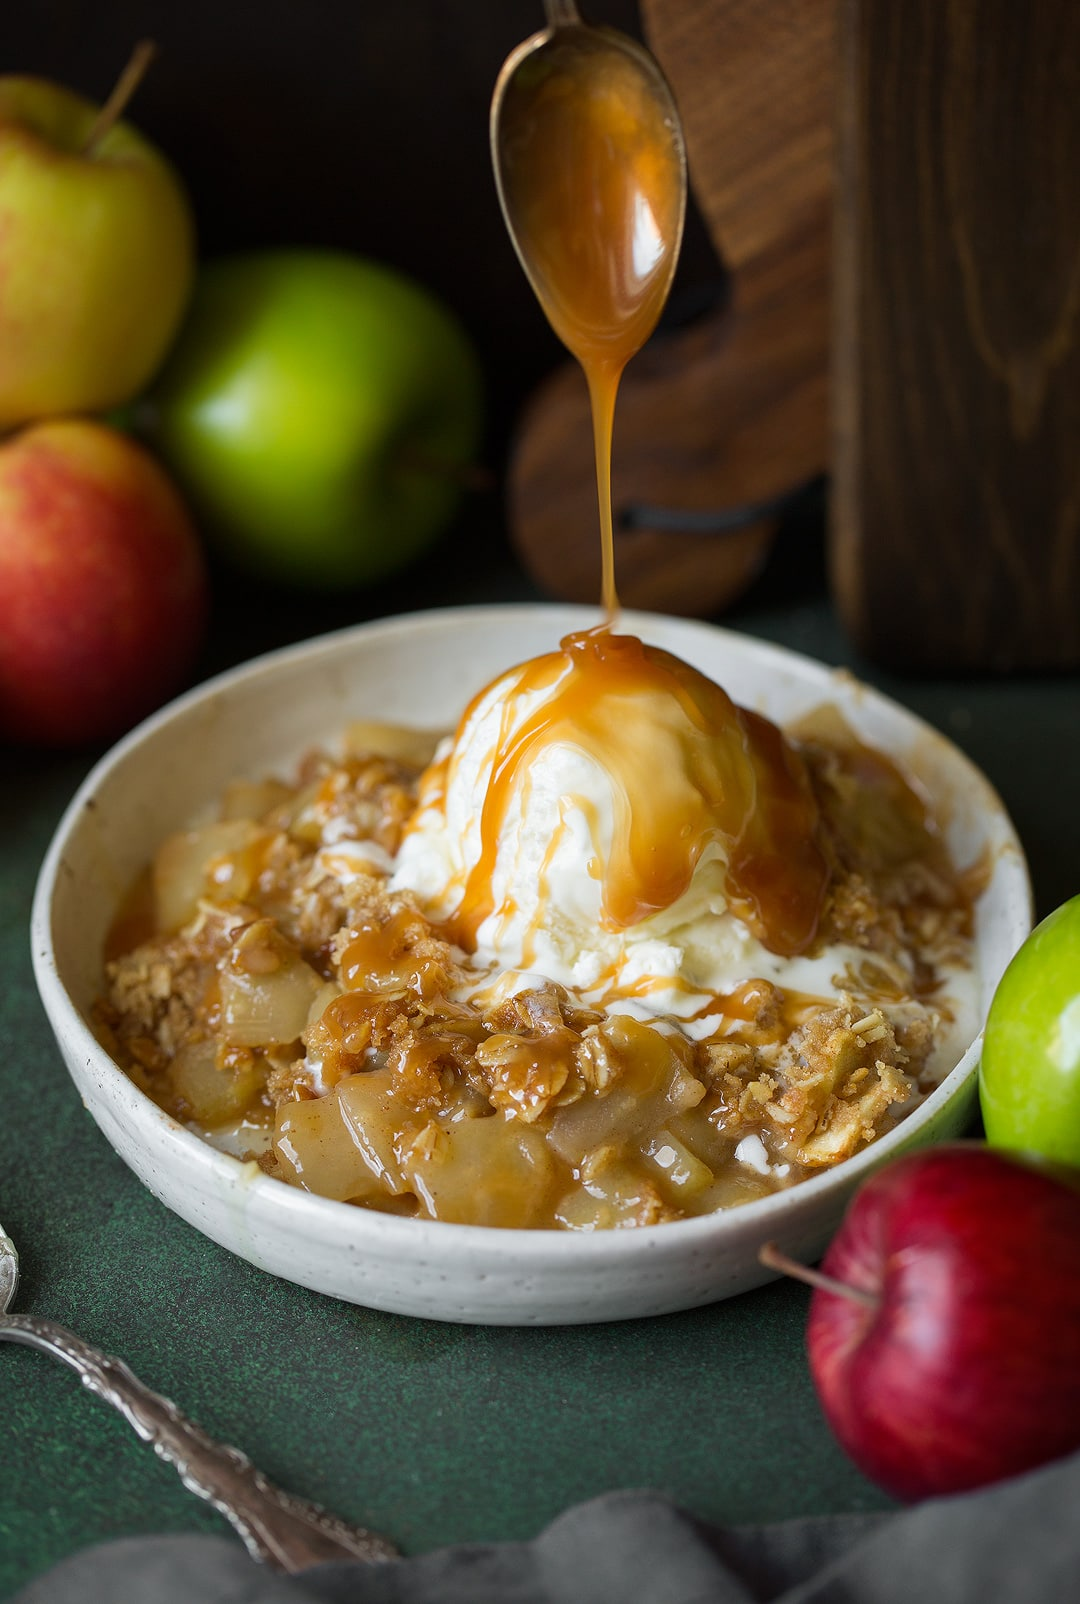 Drizzling caramel sauce onto a bowl of apple crisp and scoop of ice cream